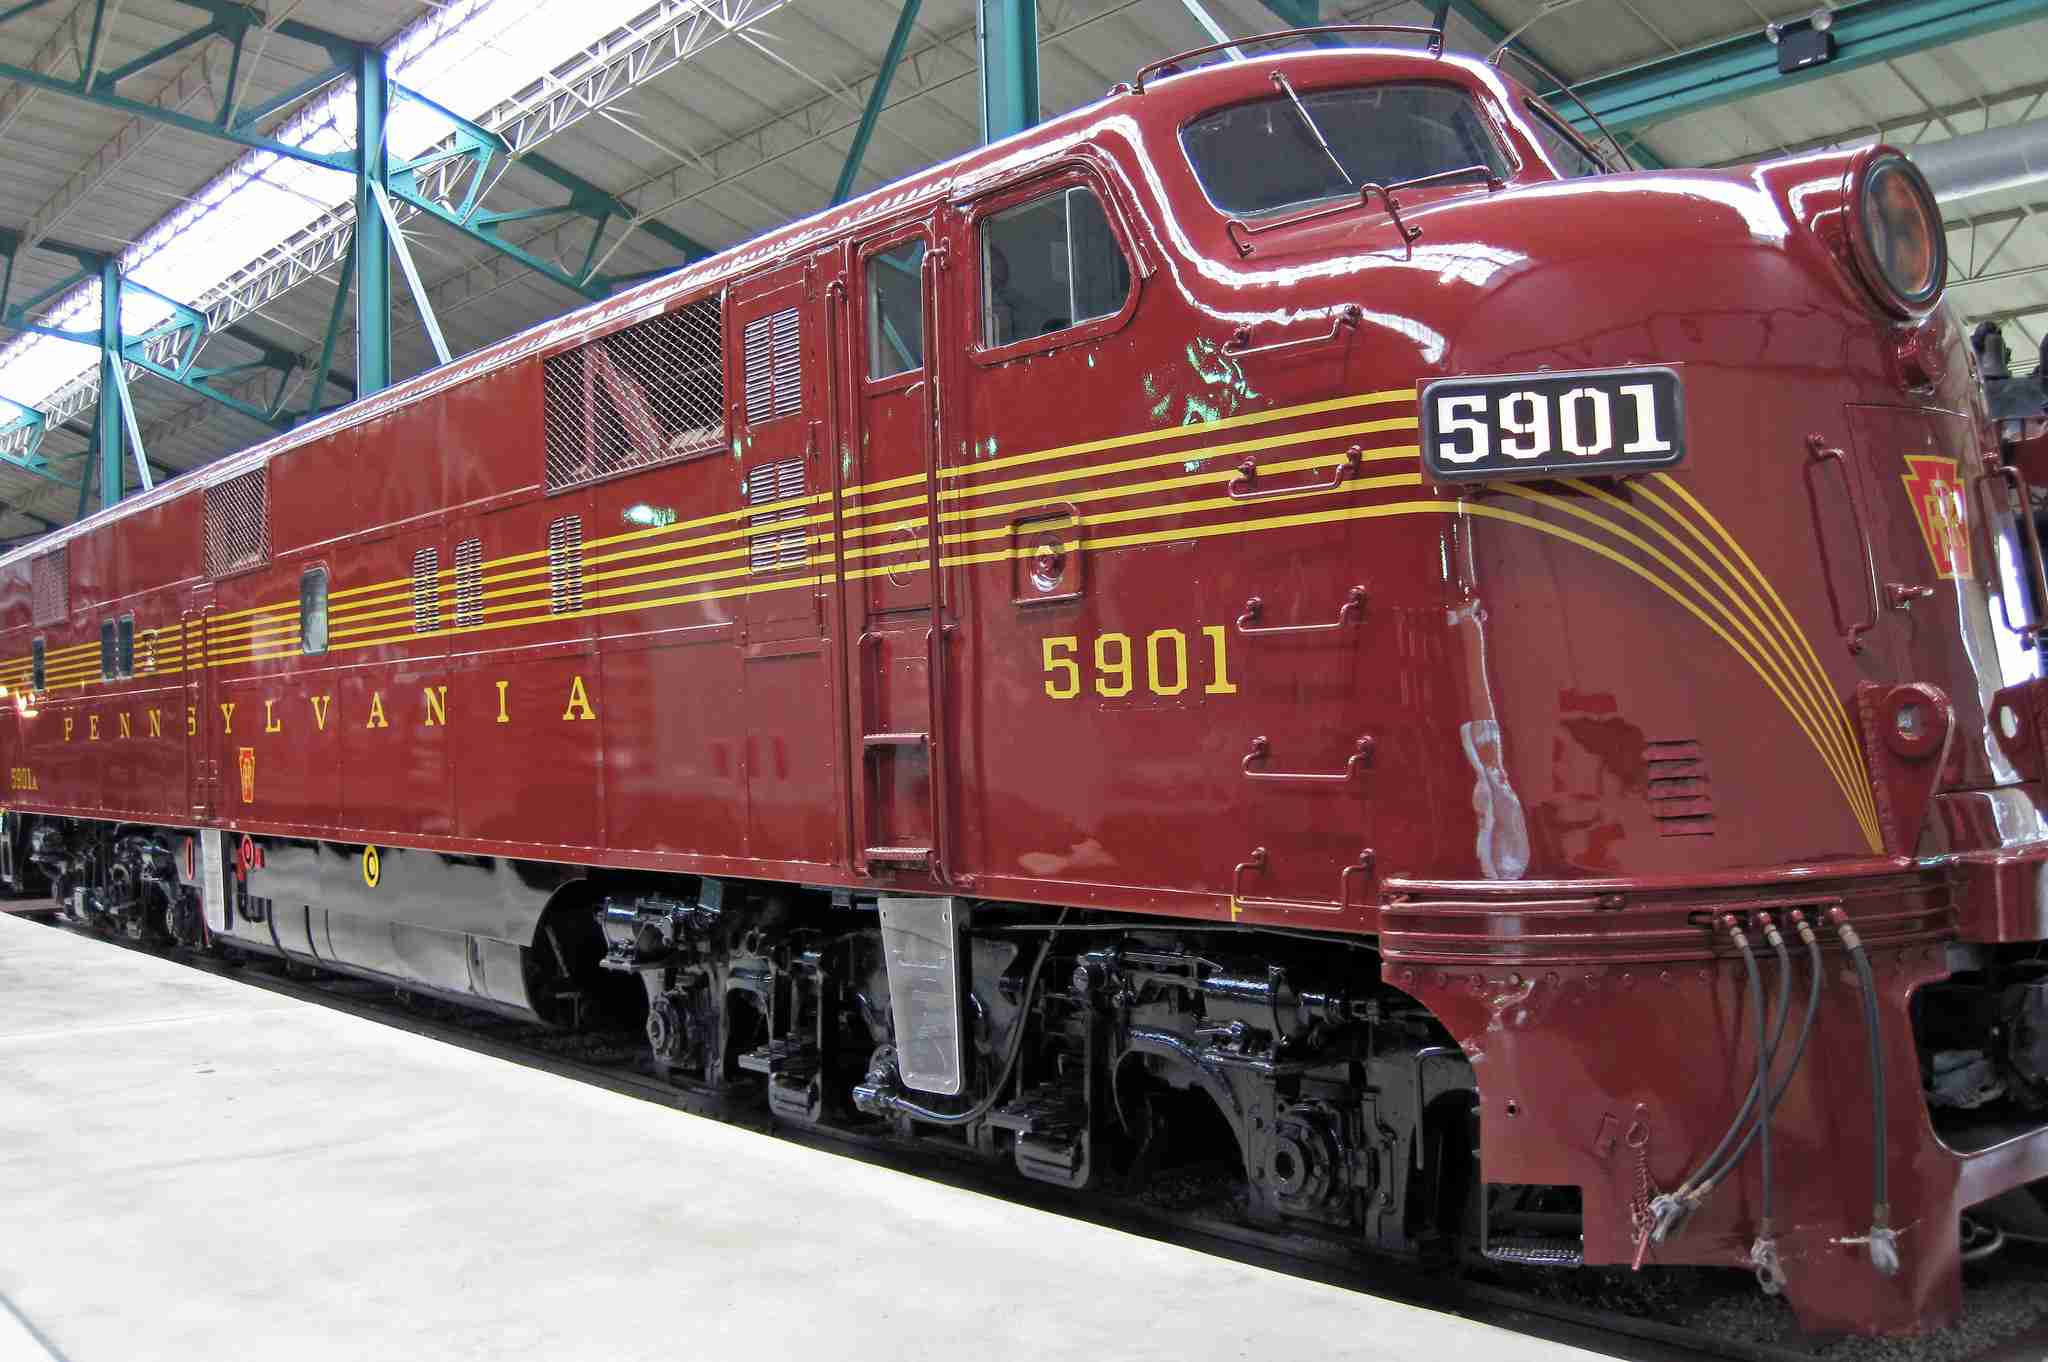 Pennsylvania locomotive